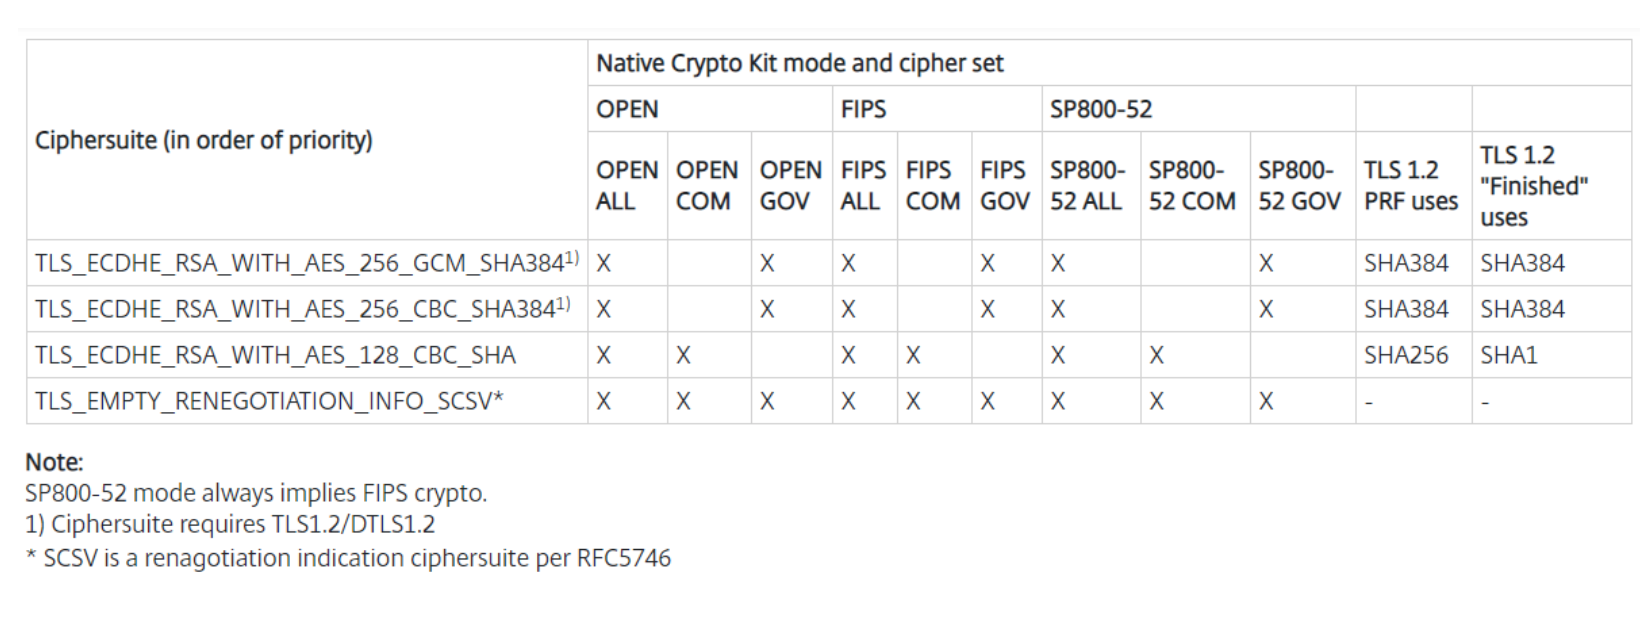 Overview of the Crypto Kit updates in Citrix Workspace 1904